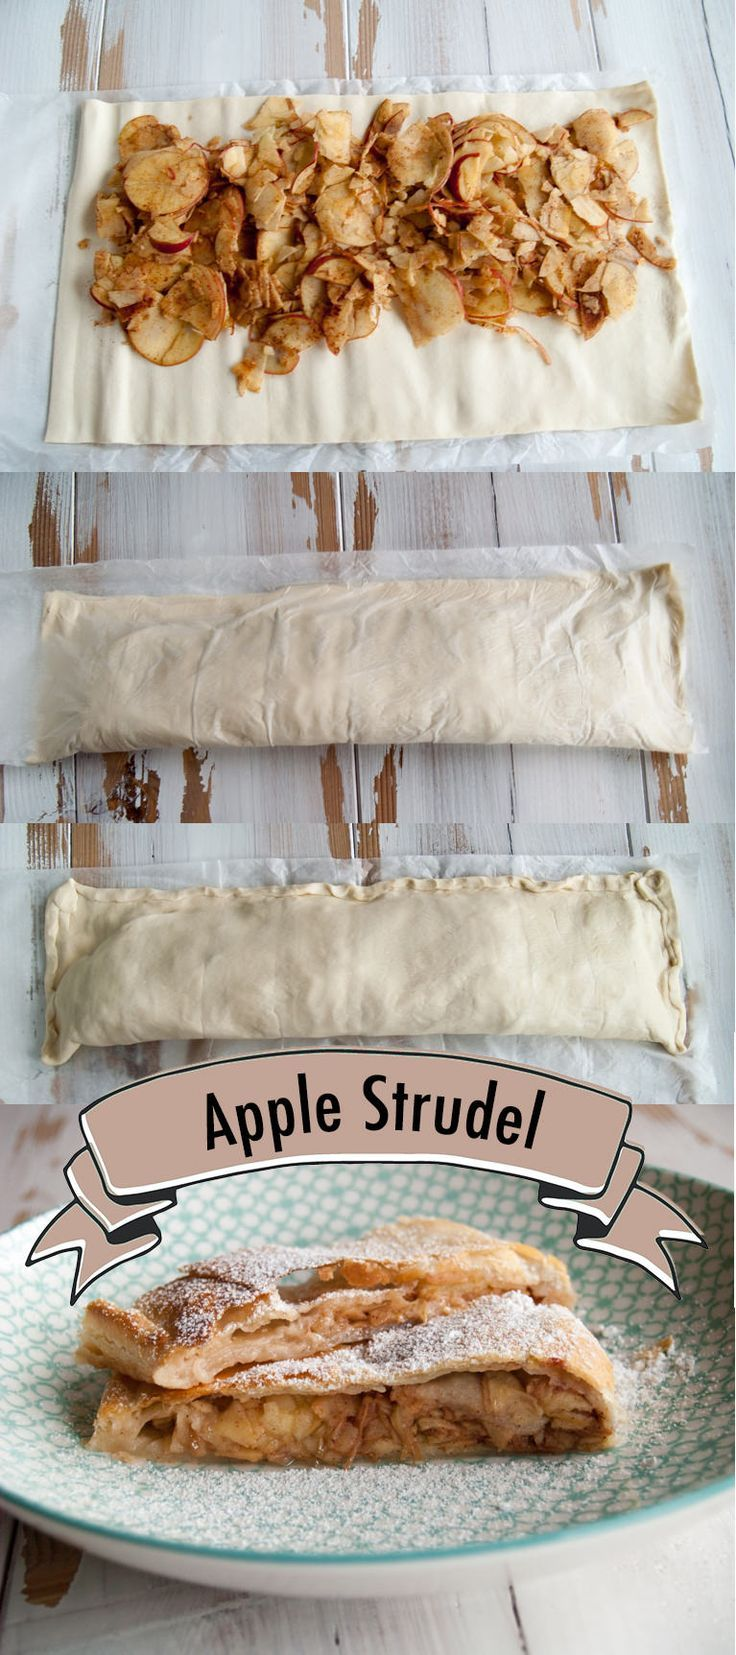 #vegan Apple Strudel